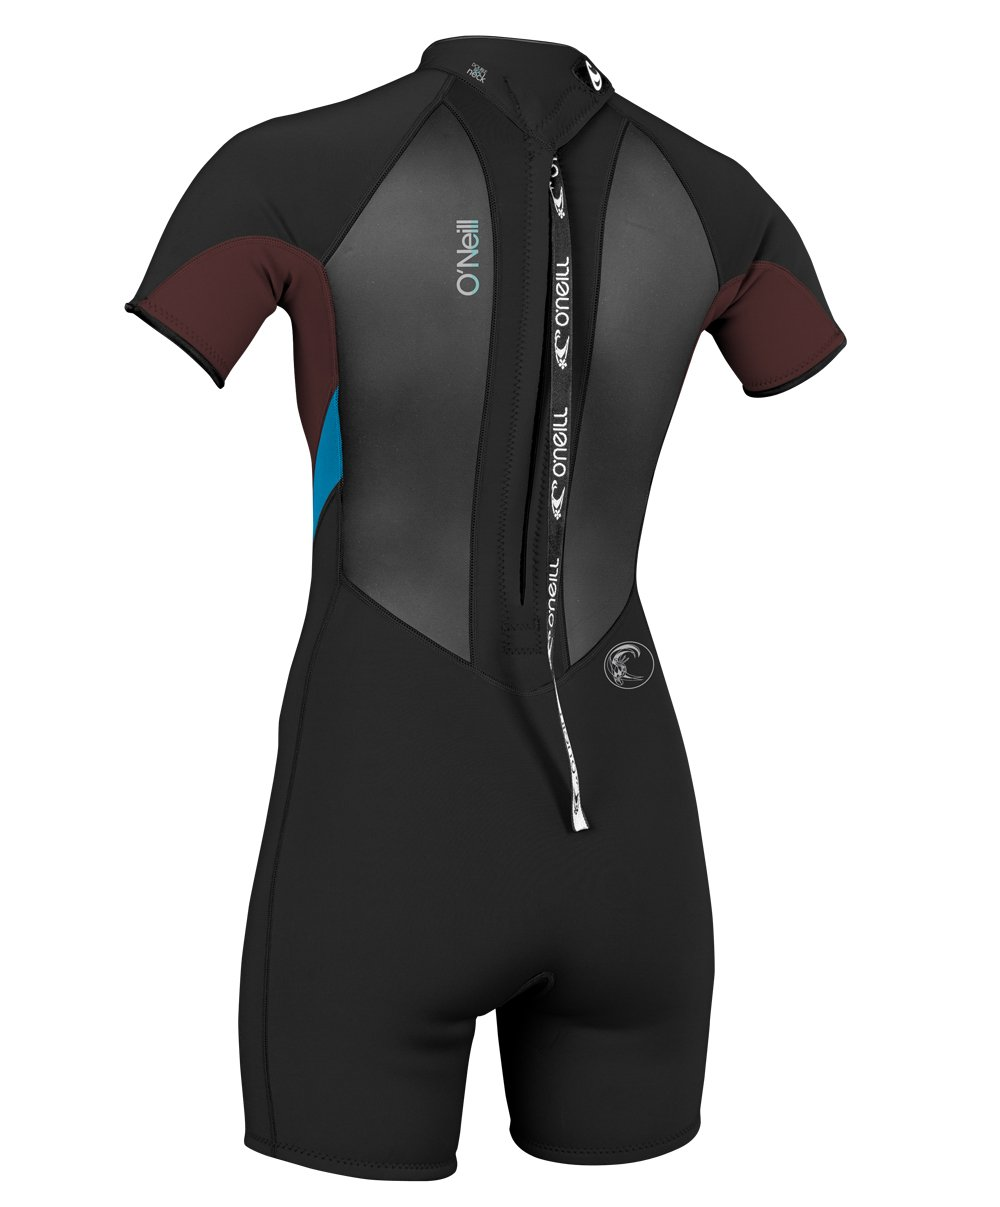 046371e83d Amazon.com  O Neill Wetsuits Womens 2 1 mm Bahia Short Sleeve Spring  Wetsuit  Sports   Outdoors